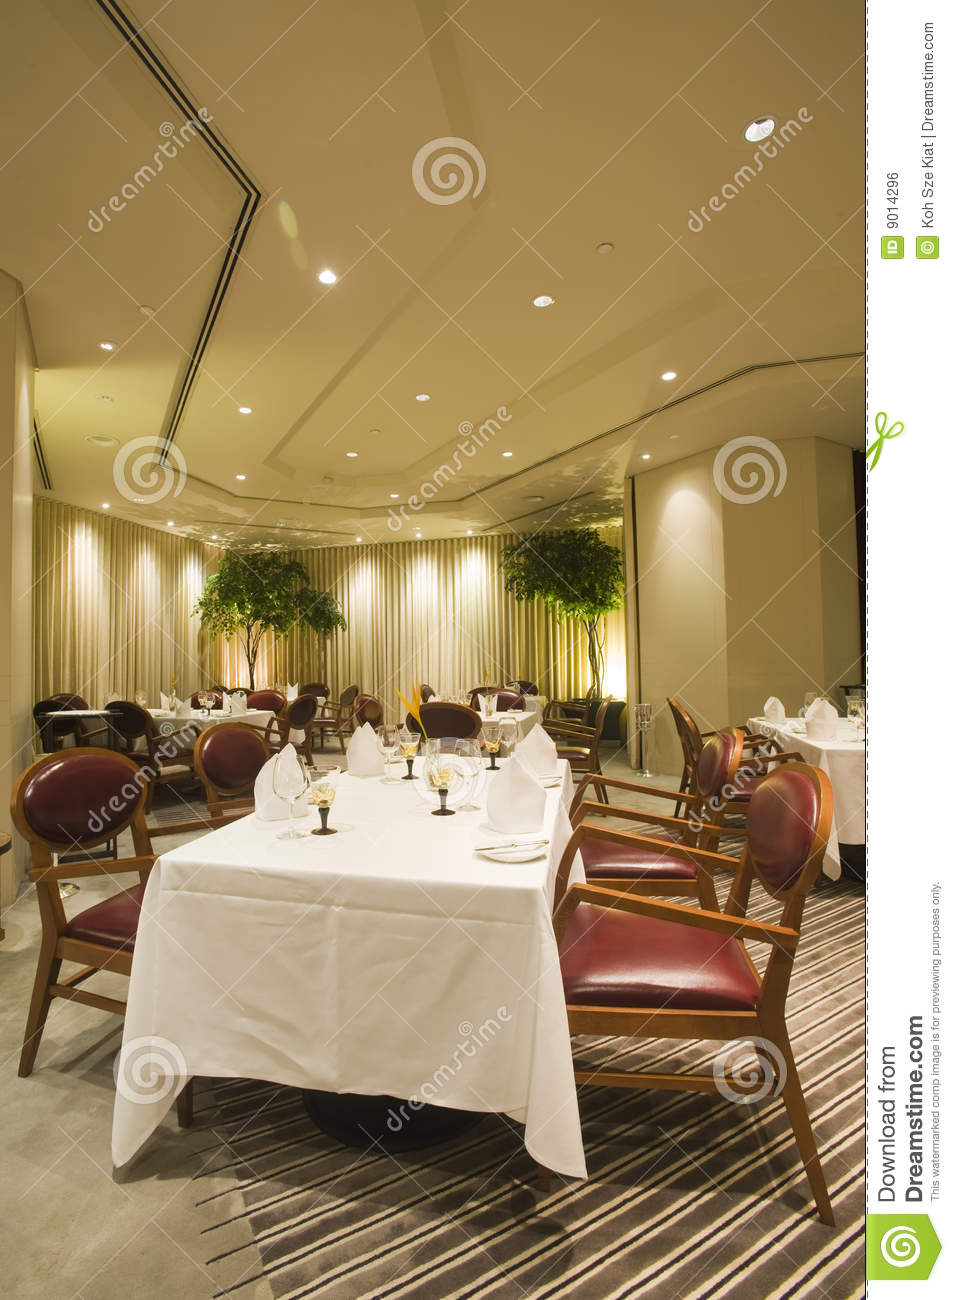 Interior of fine dining restaurant royalty free stock